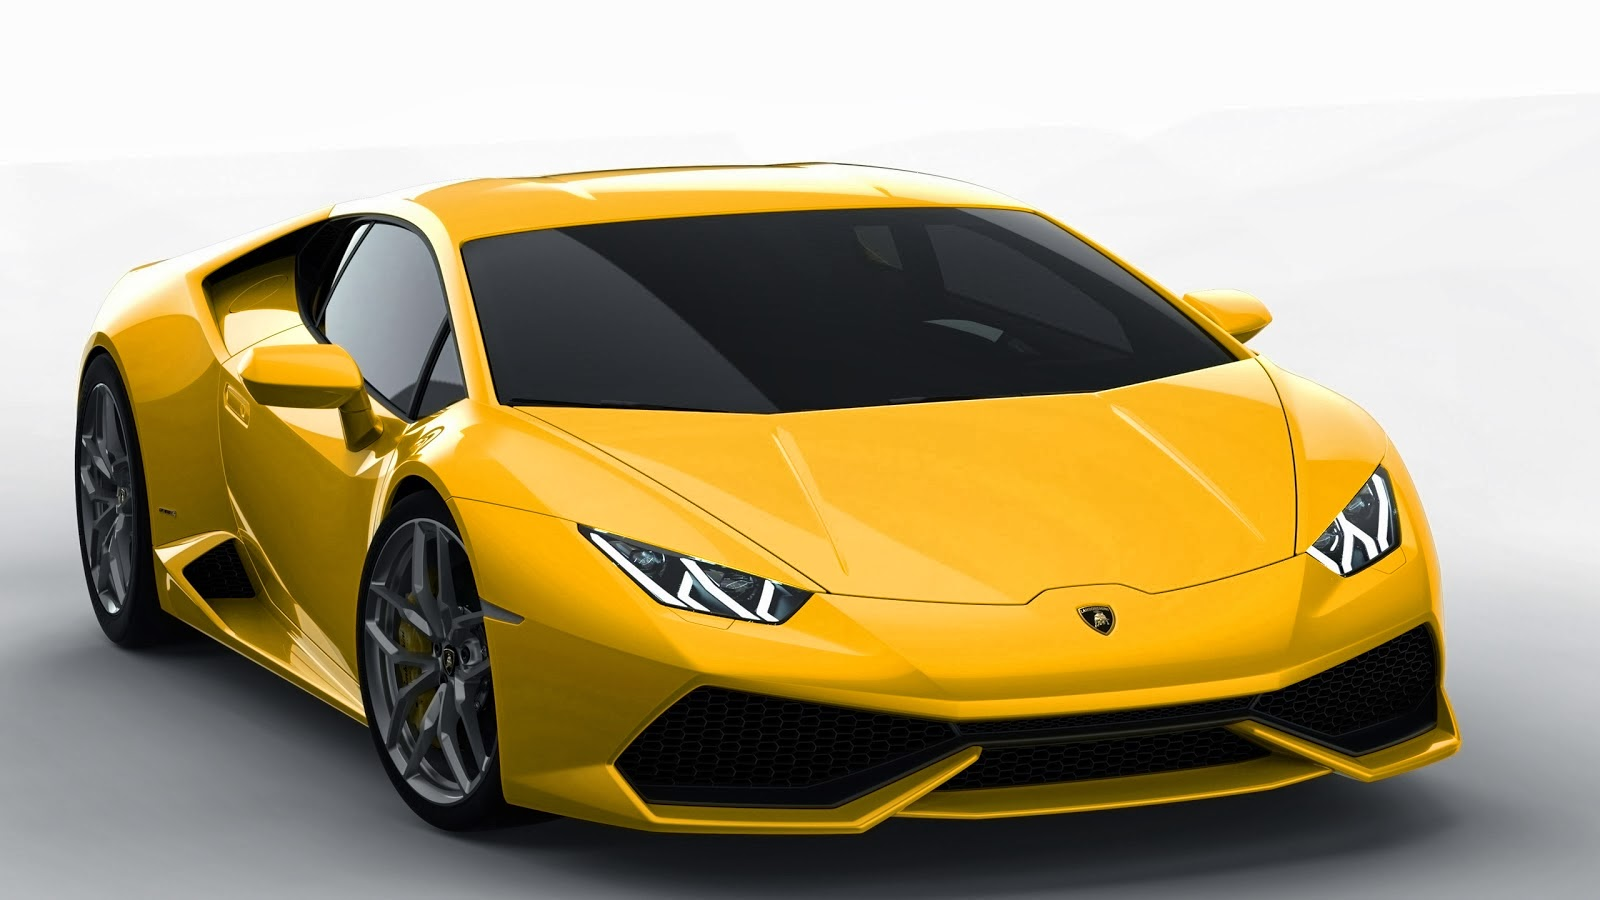 awesome best used sports cars under 40k 3 2014sportscars9jpg - Sports Cars 2014